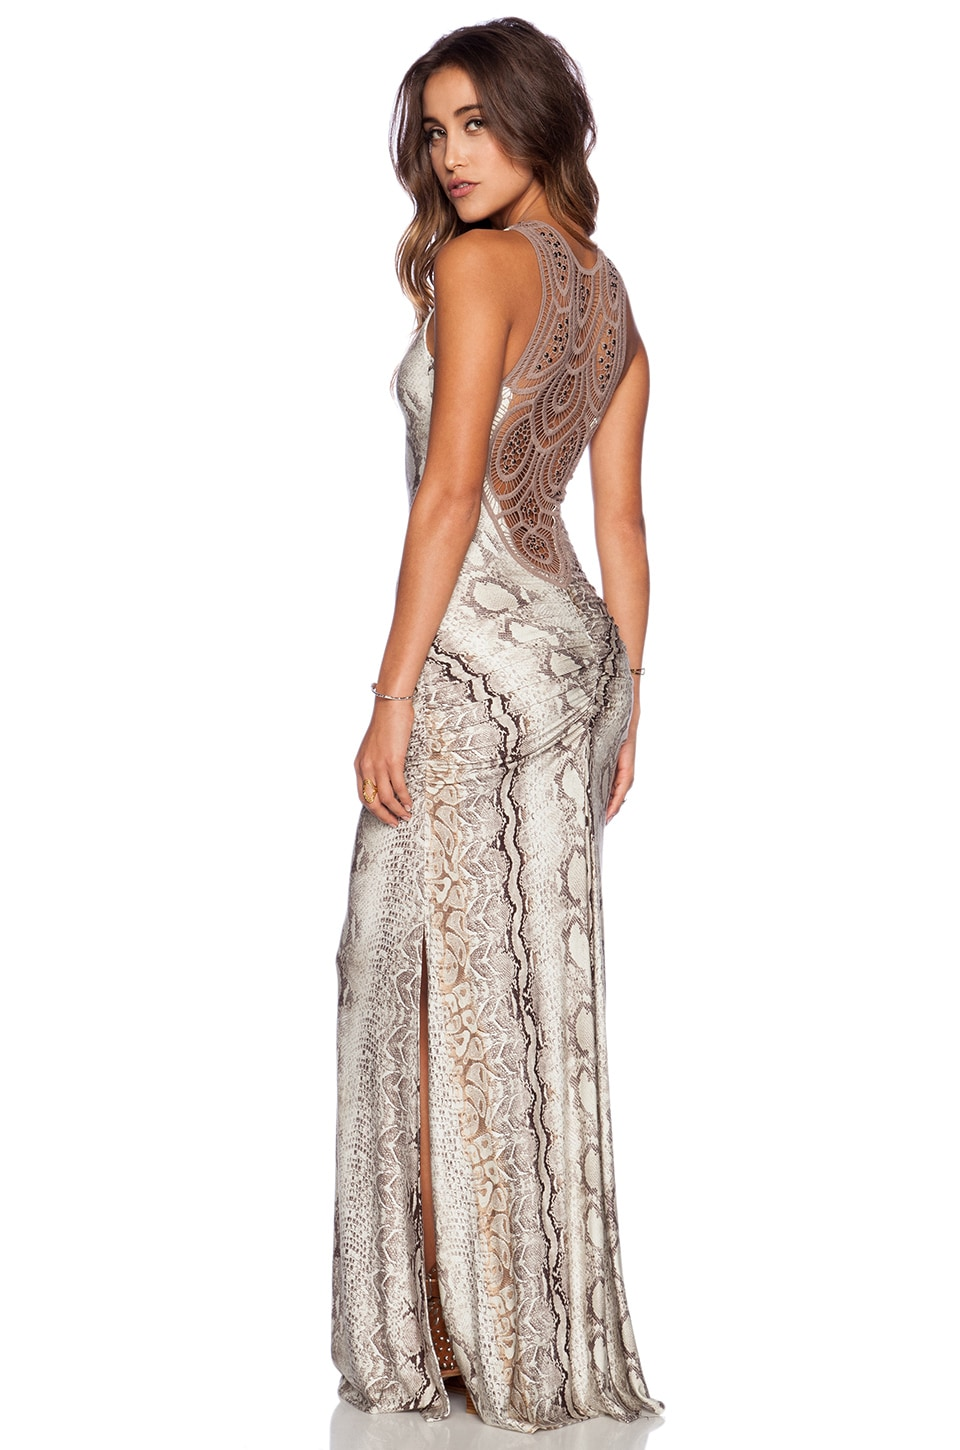 sky Patrina Maxi Dress in Taupe